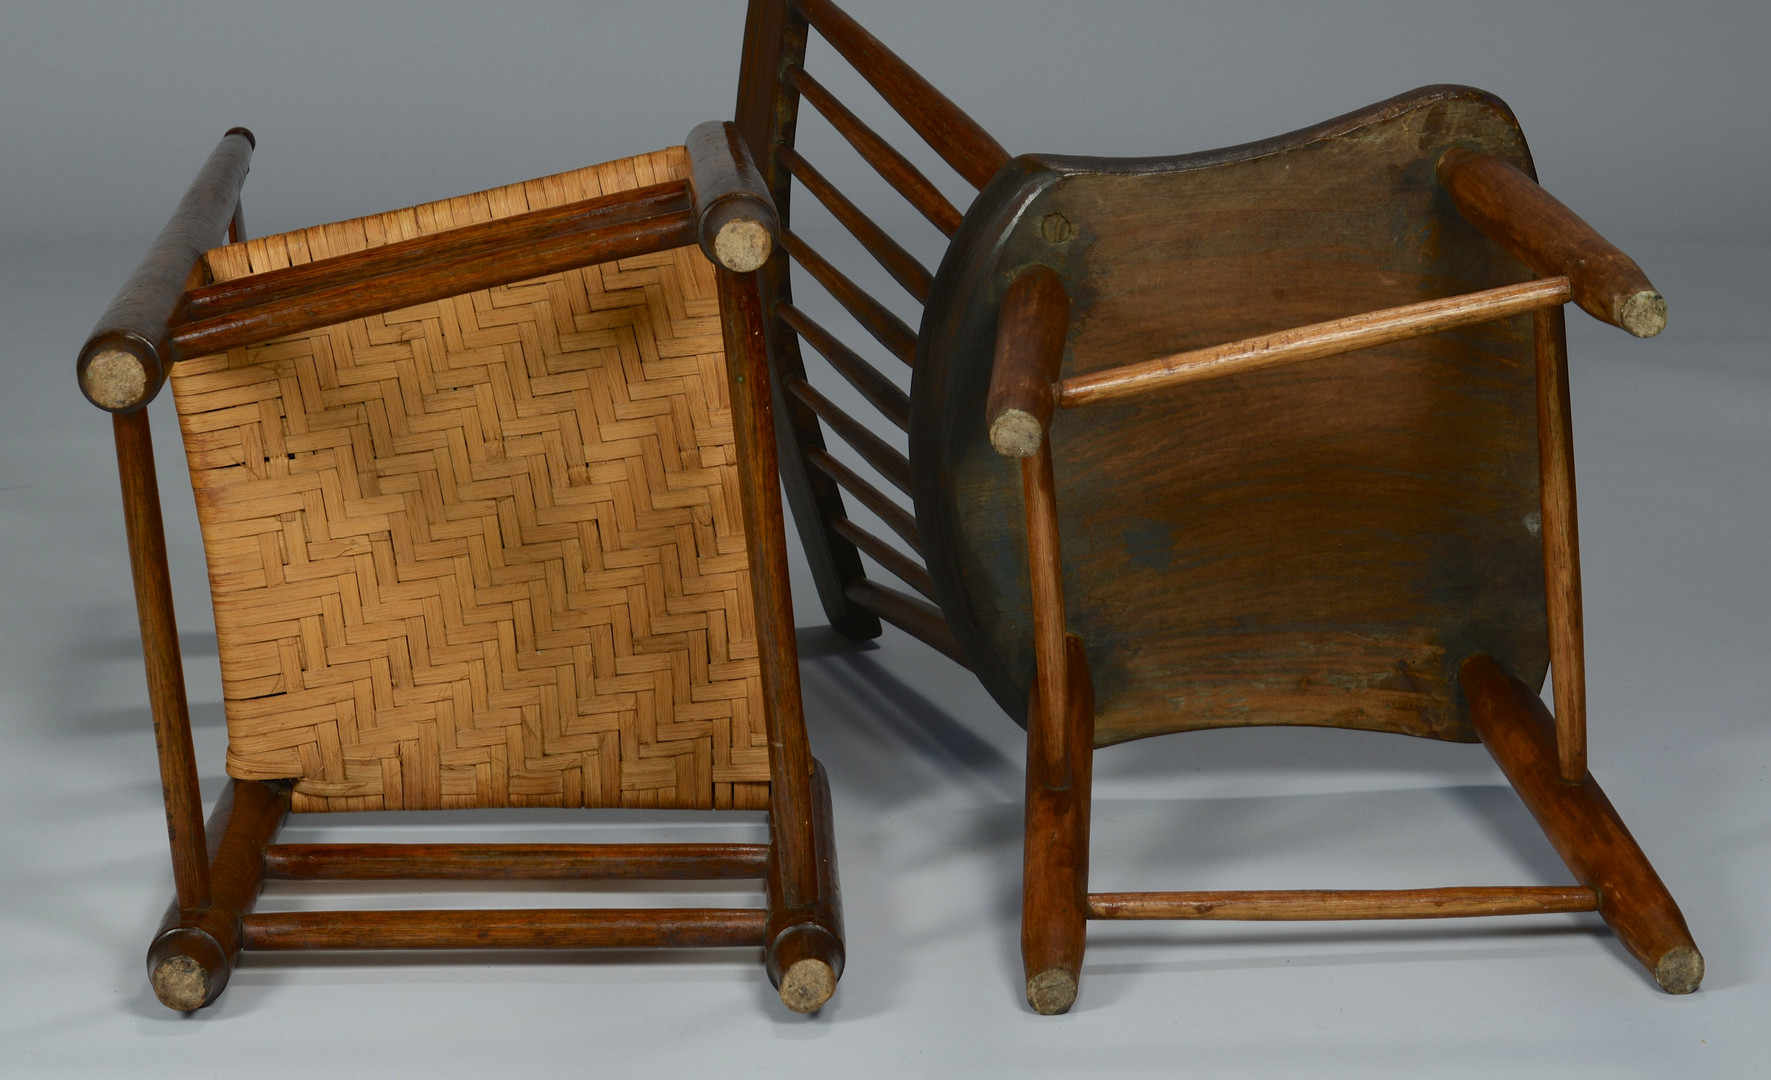 Lot 300: 2 East TN Chairs & 1 East TN Table